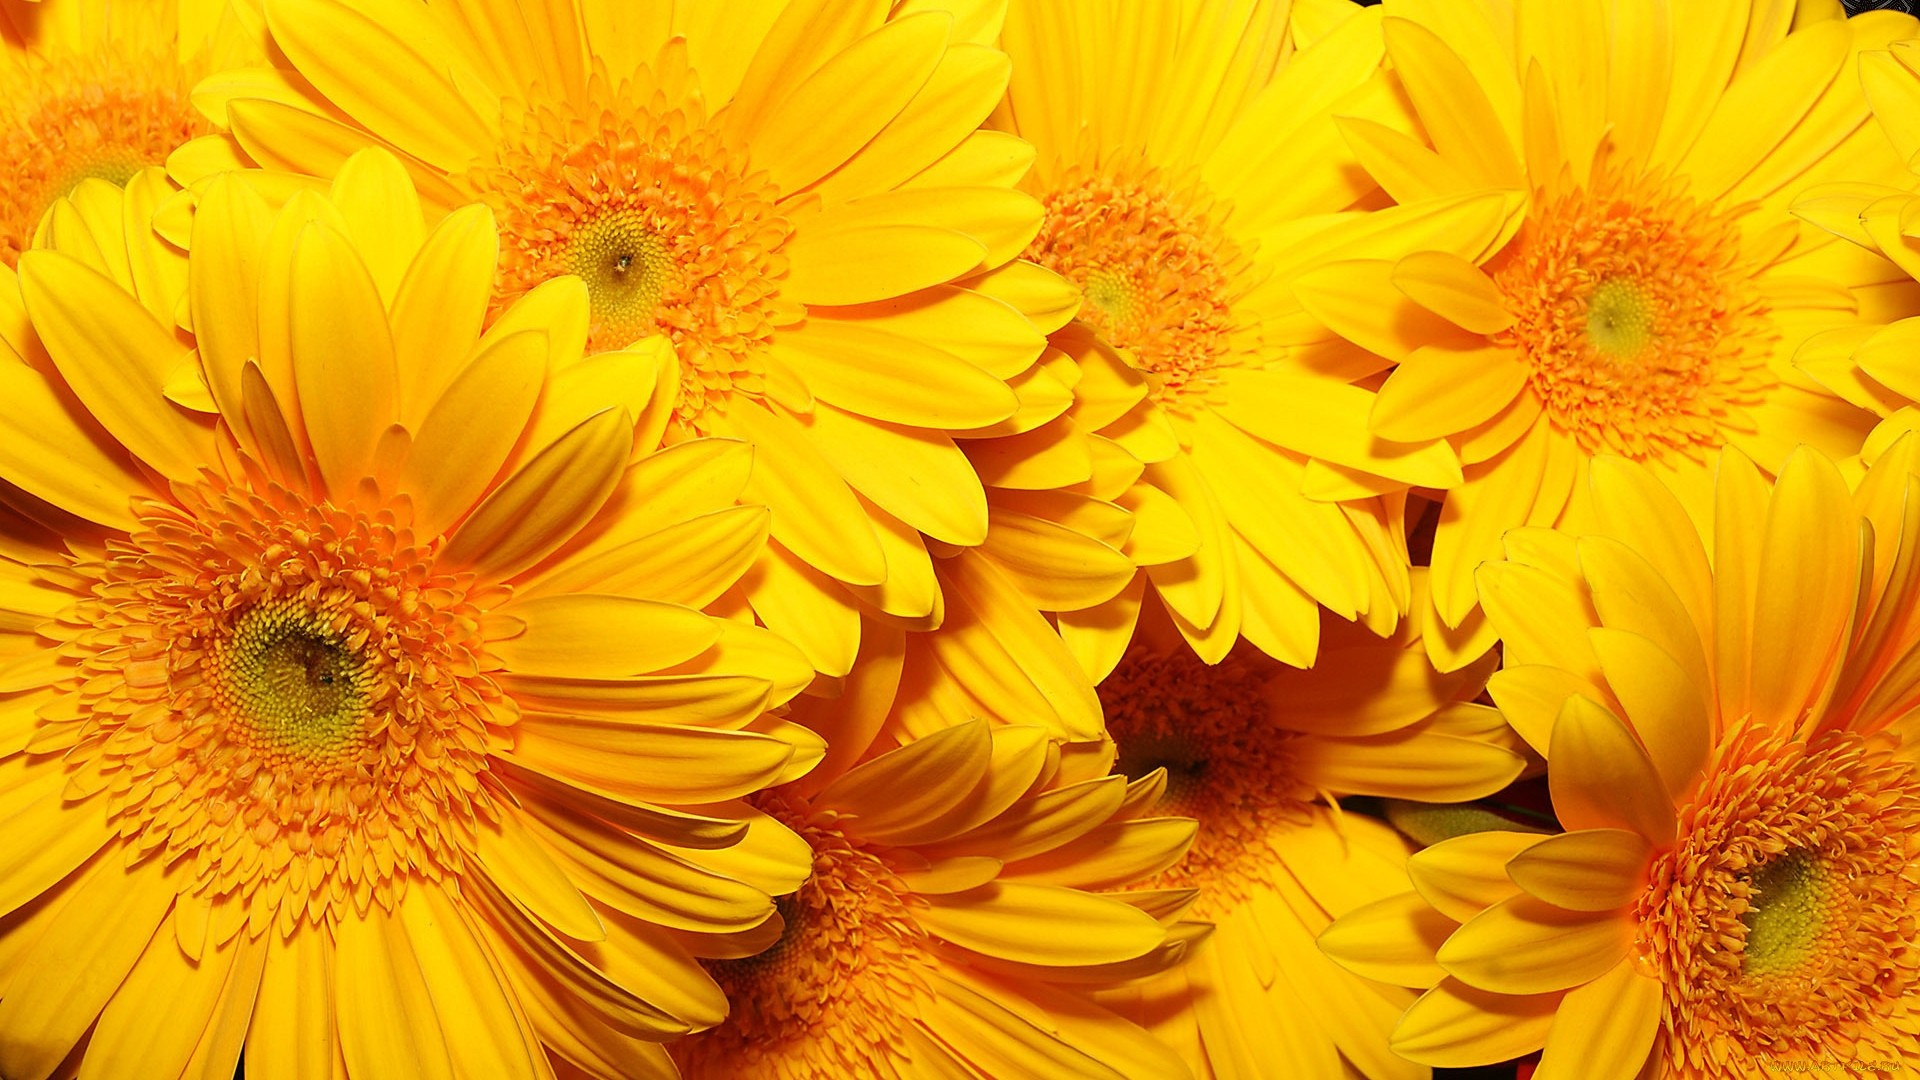 Yellow Flower Wallpaper for pc